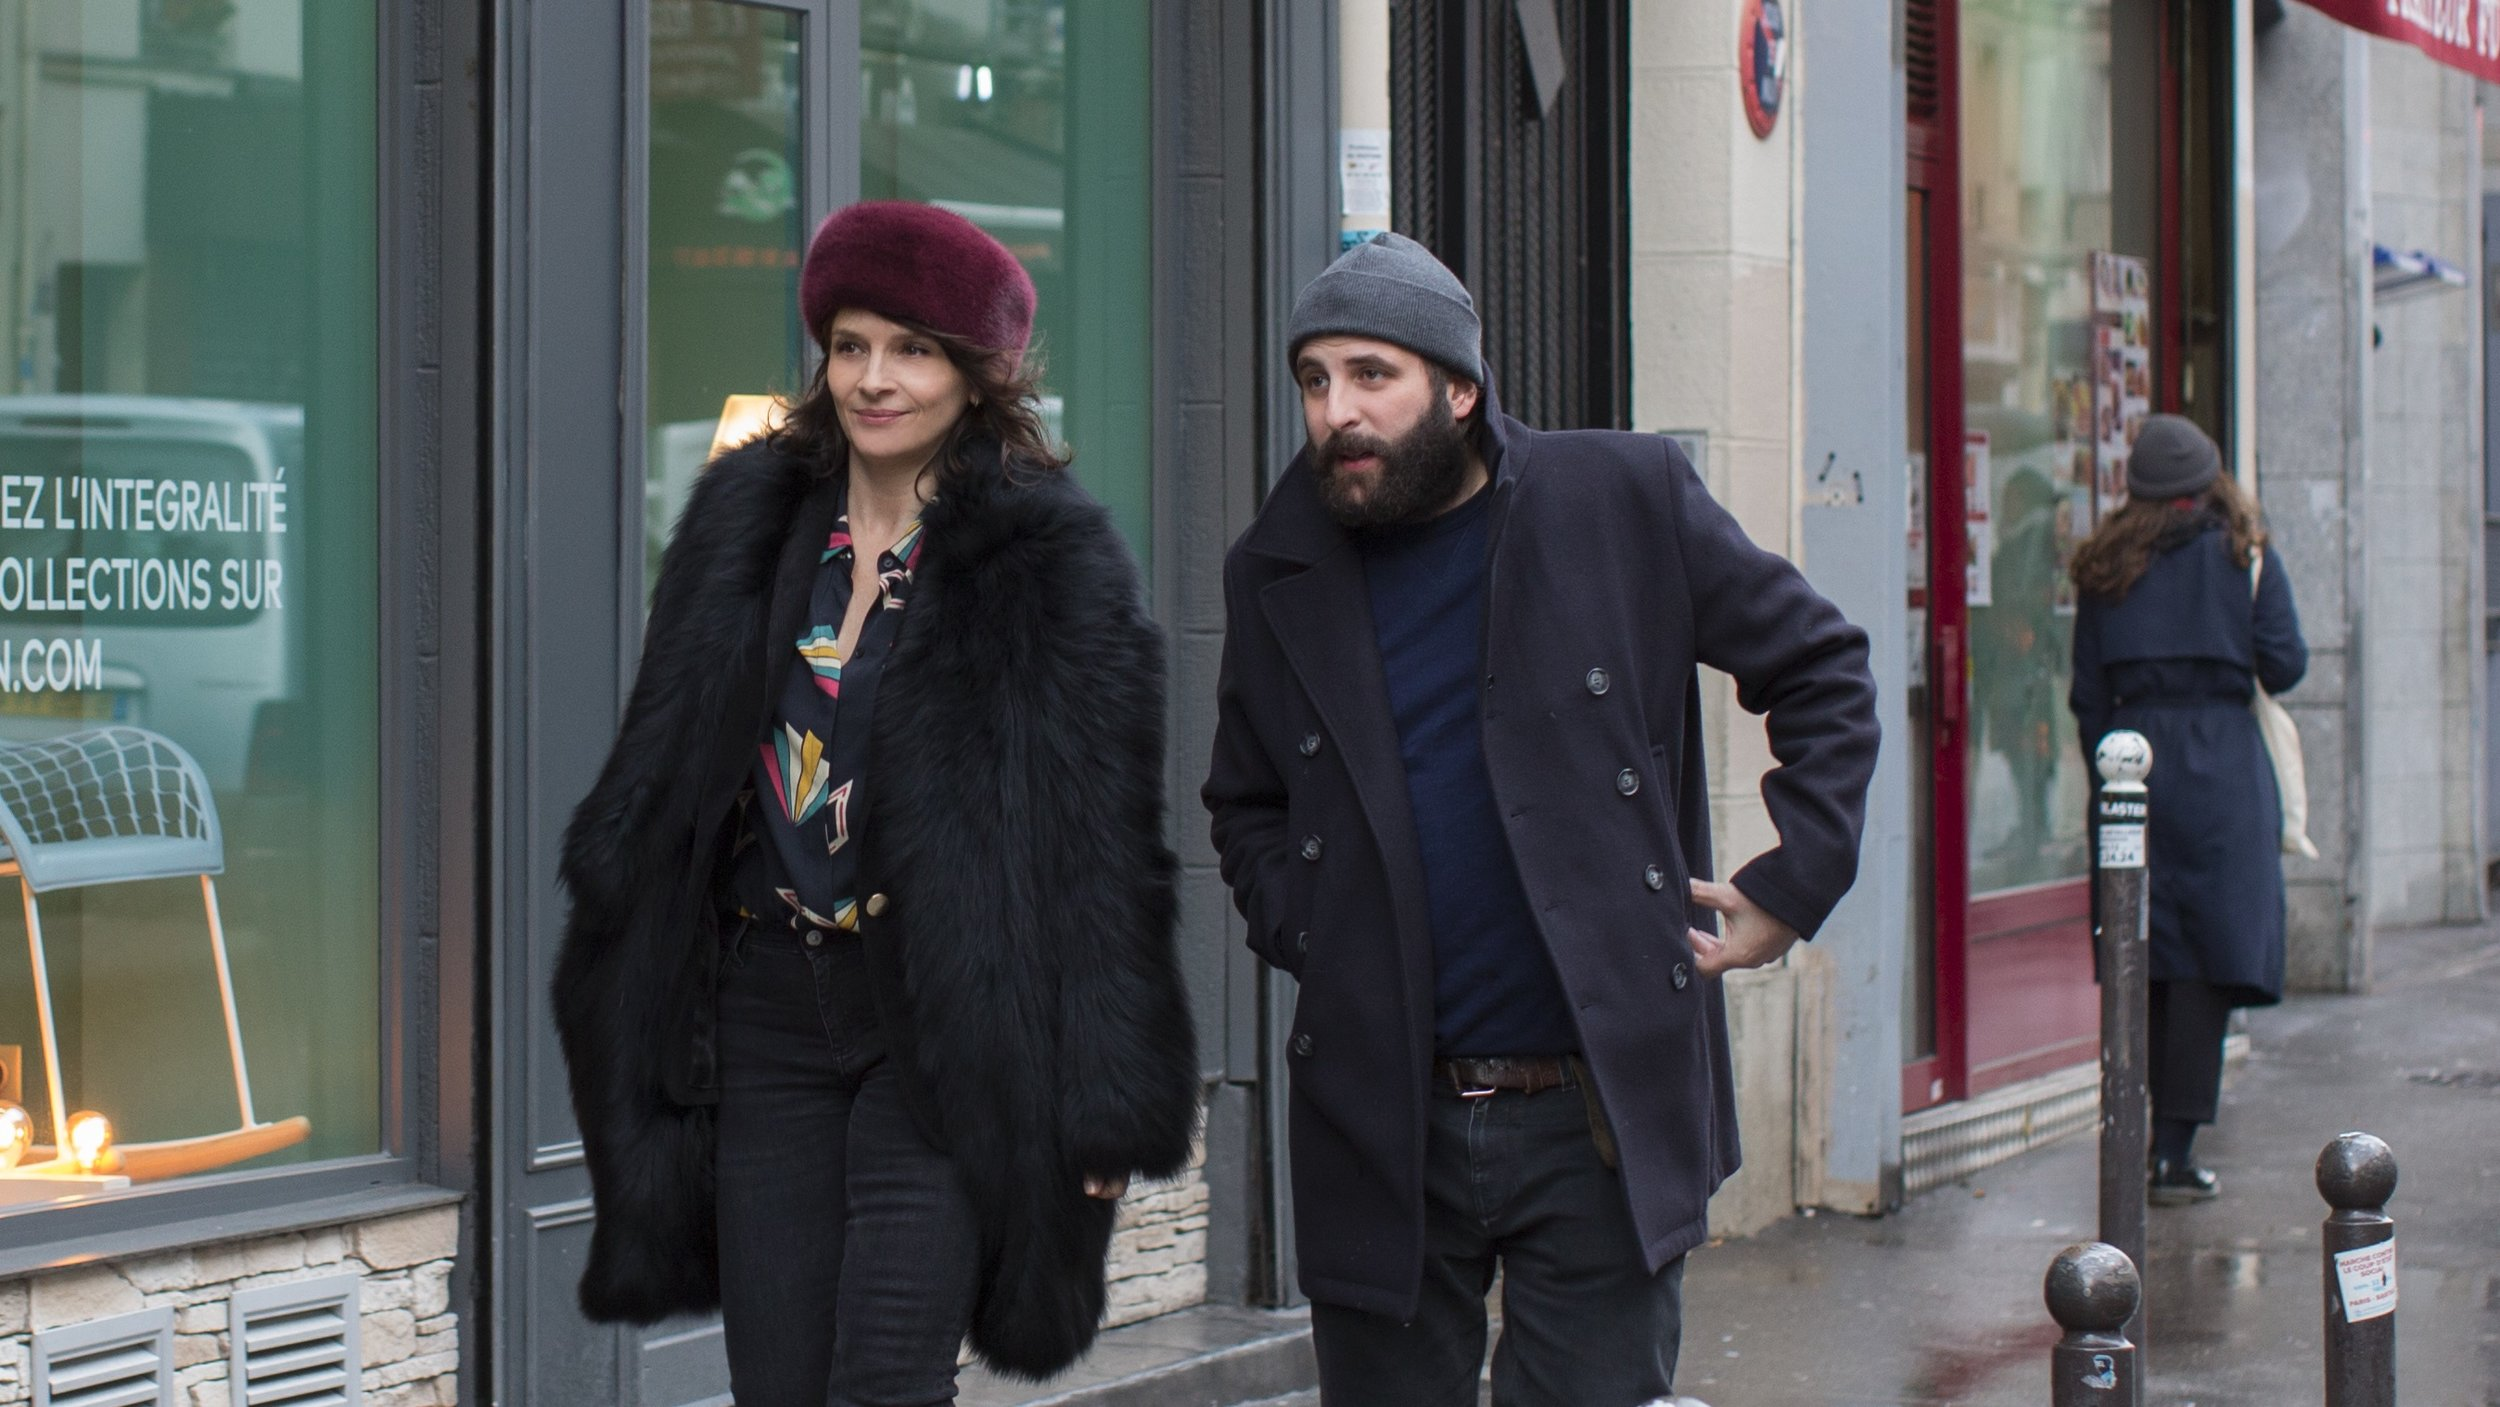 """Selena (Juliette Binoche, left), a TV actress, goes out on the town with Leonard (Vincent Macaigne), an author who wrote a thinly veiled version of their affair into his latest novel, in Olivier Assayas' comedy """"Non-Fiction""""."""" (Photo courtesy IFC Films / Sundance Selects.)"""